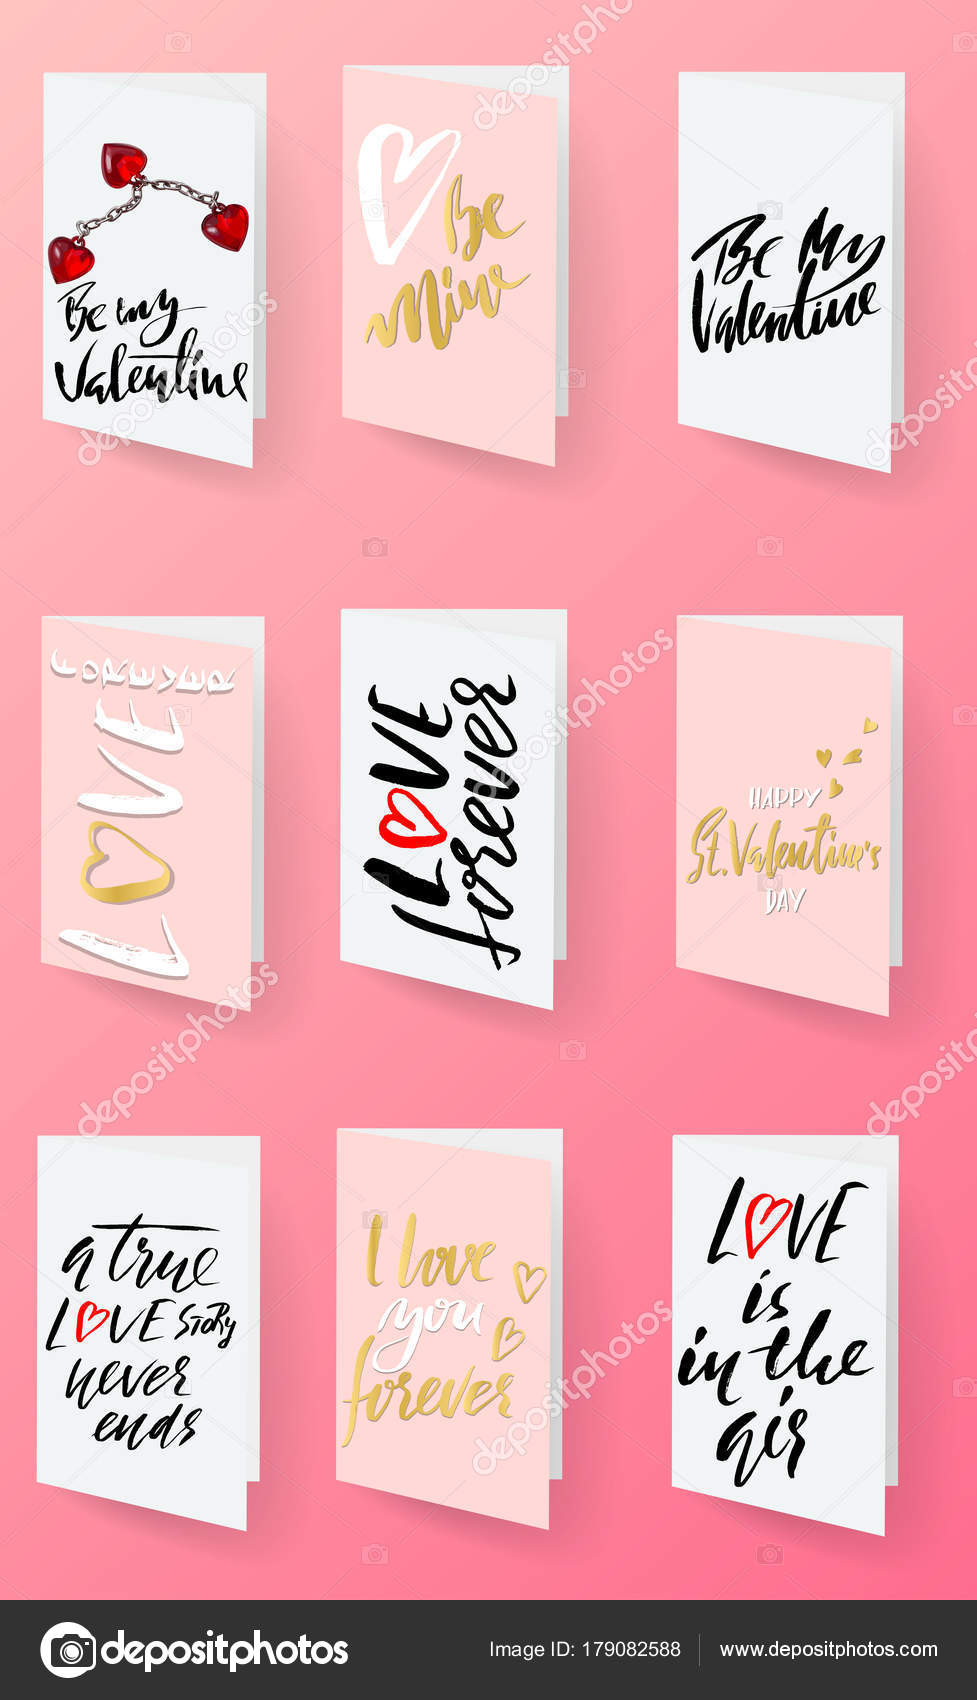 saint valentines day cards templates hand drawn romantic modern dry brush lettering heart vector